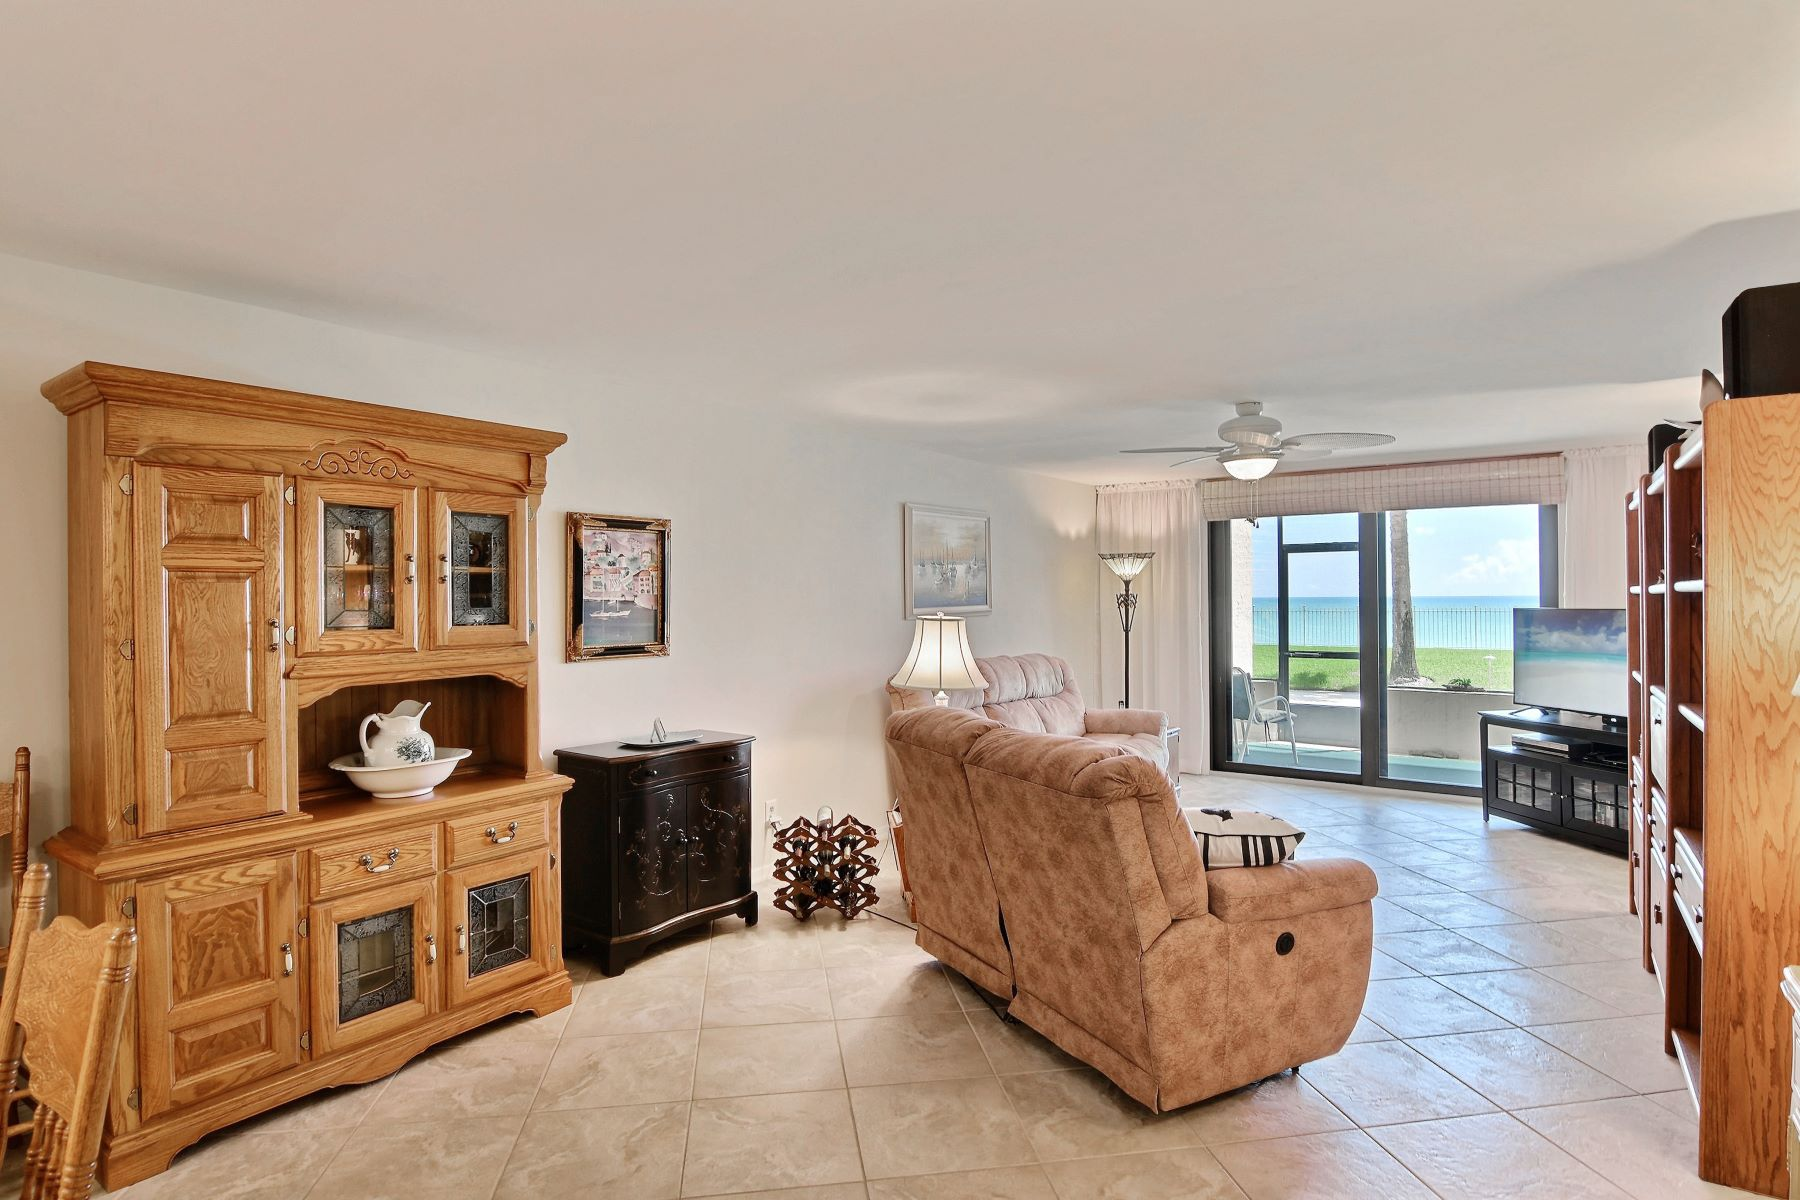 Direct Oceanfront Opulent Pet Friendly Three Bedroom with Garage 4800 Highway A1A #116 NULL Vero Beach, Florida 32963 Förenta staterna